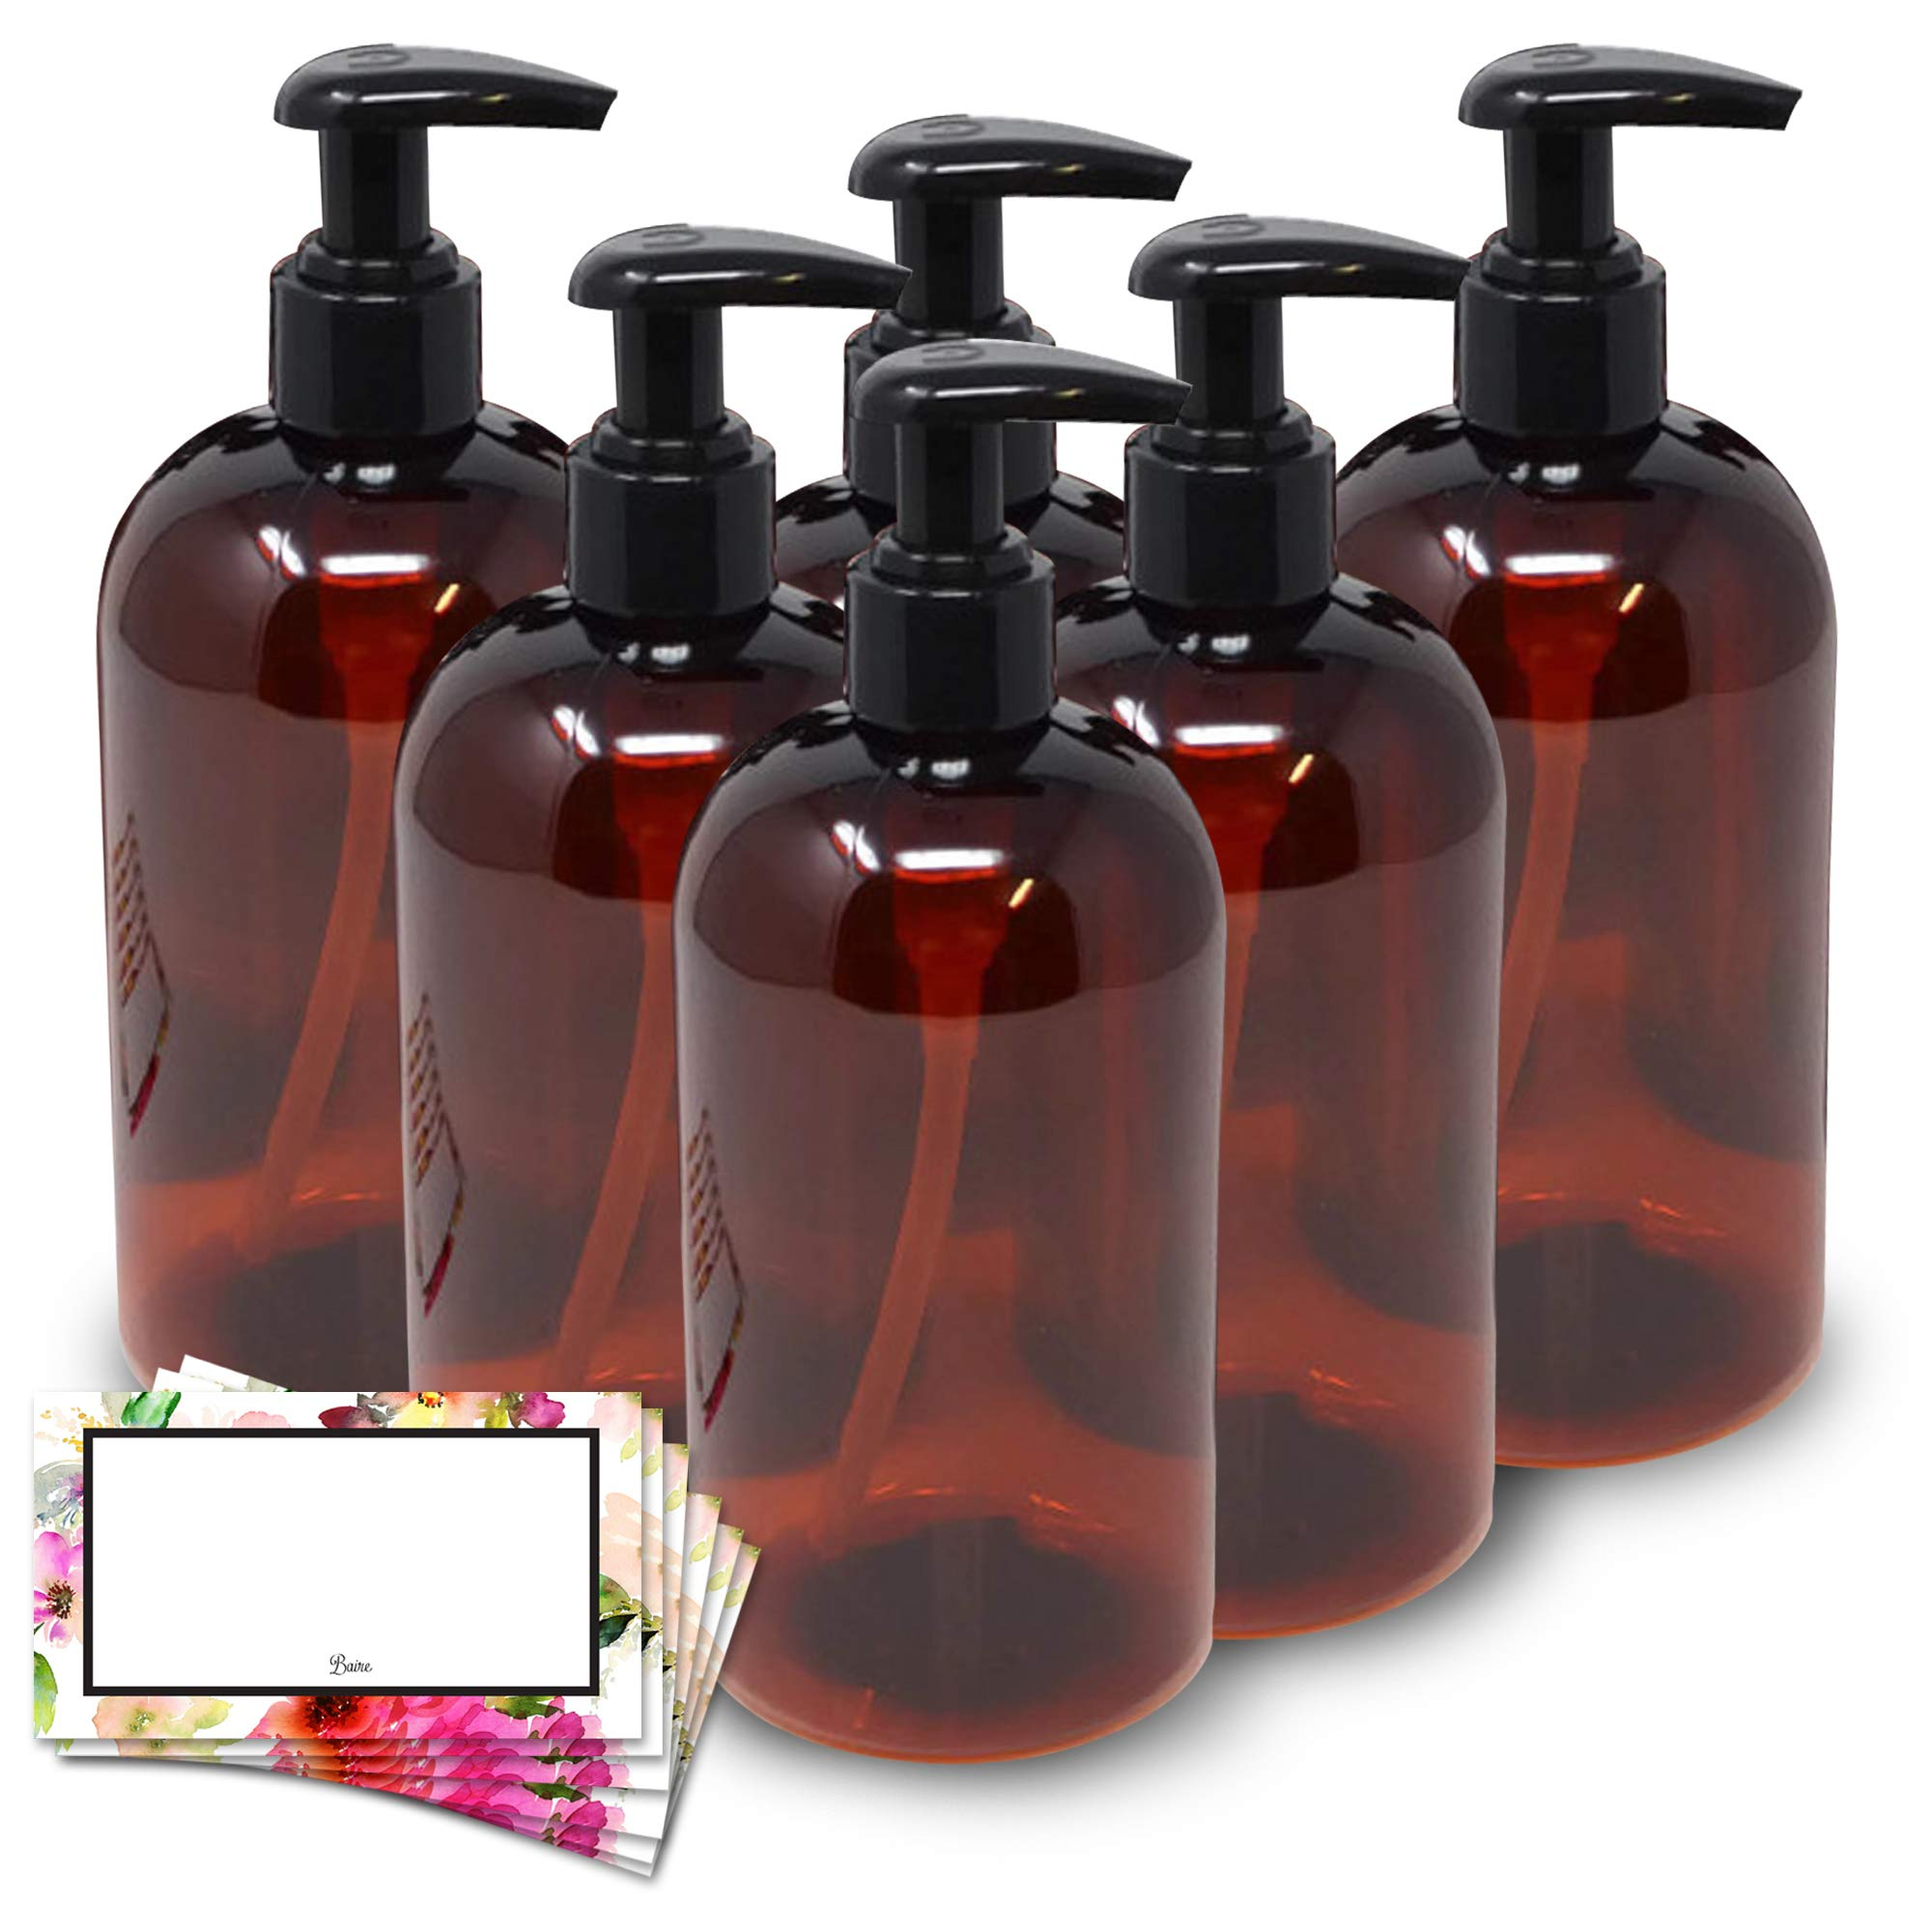 BAIRE BOTTLES -16 OZ BROWN AMBER PLASTIC REFILLABLE BOTTLES with BLACK LOTION PUMPS, ORGANIZE Soap, Shampoo, Lotion with a Clean Look - PET, Lightweight, BPA Free, 6 Pack, BONUS 6 FLORAL LABELS